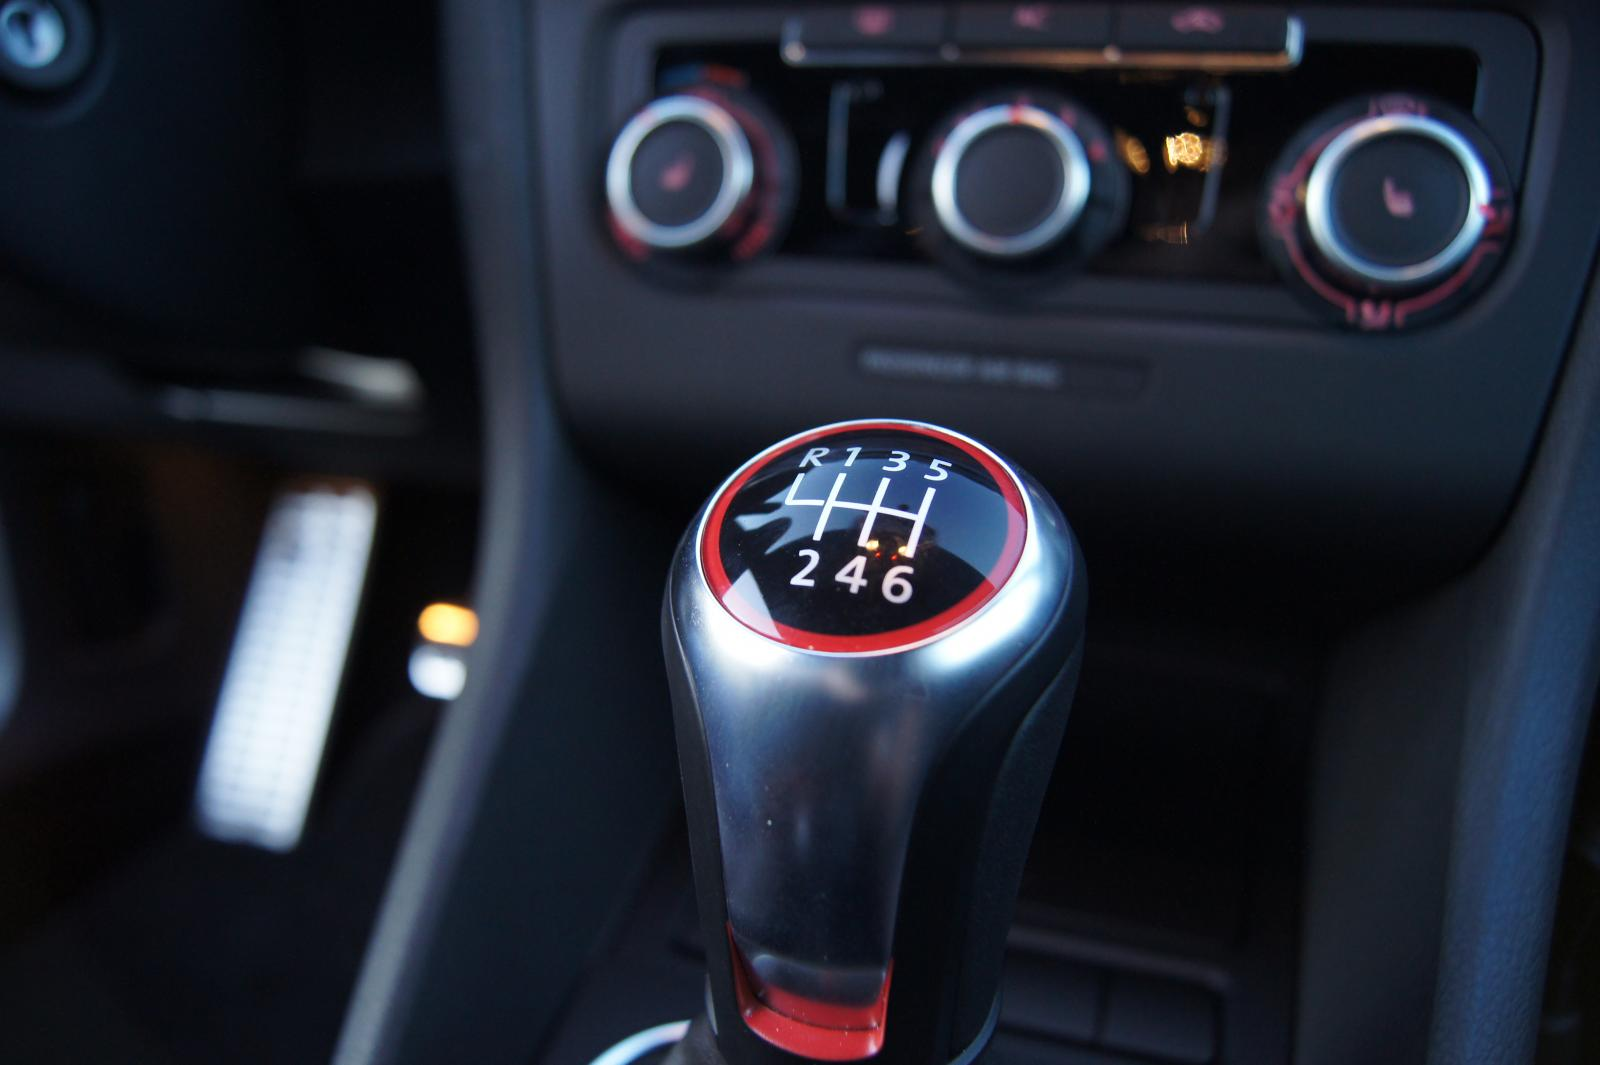 6 Speed Manual